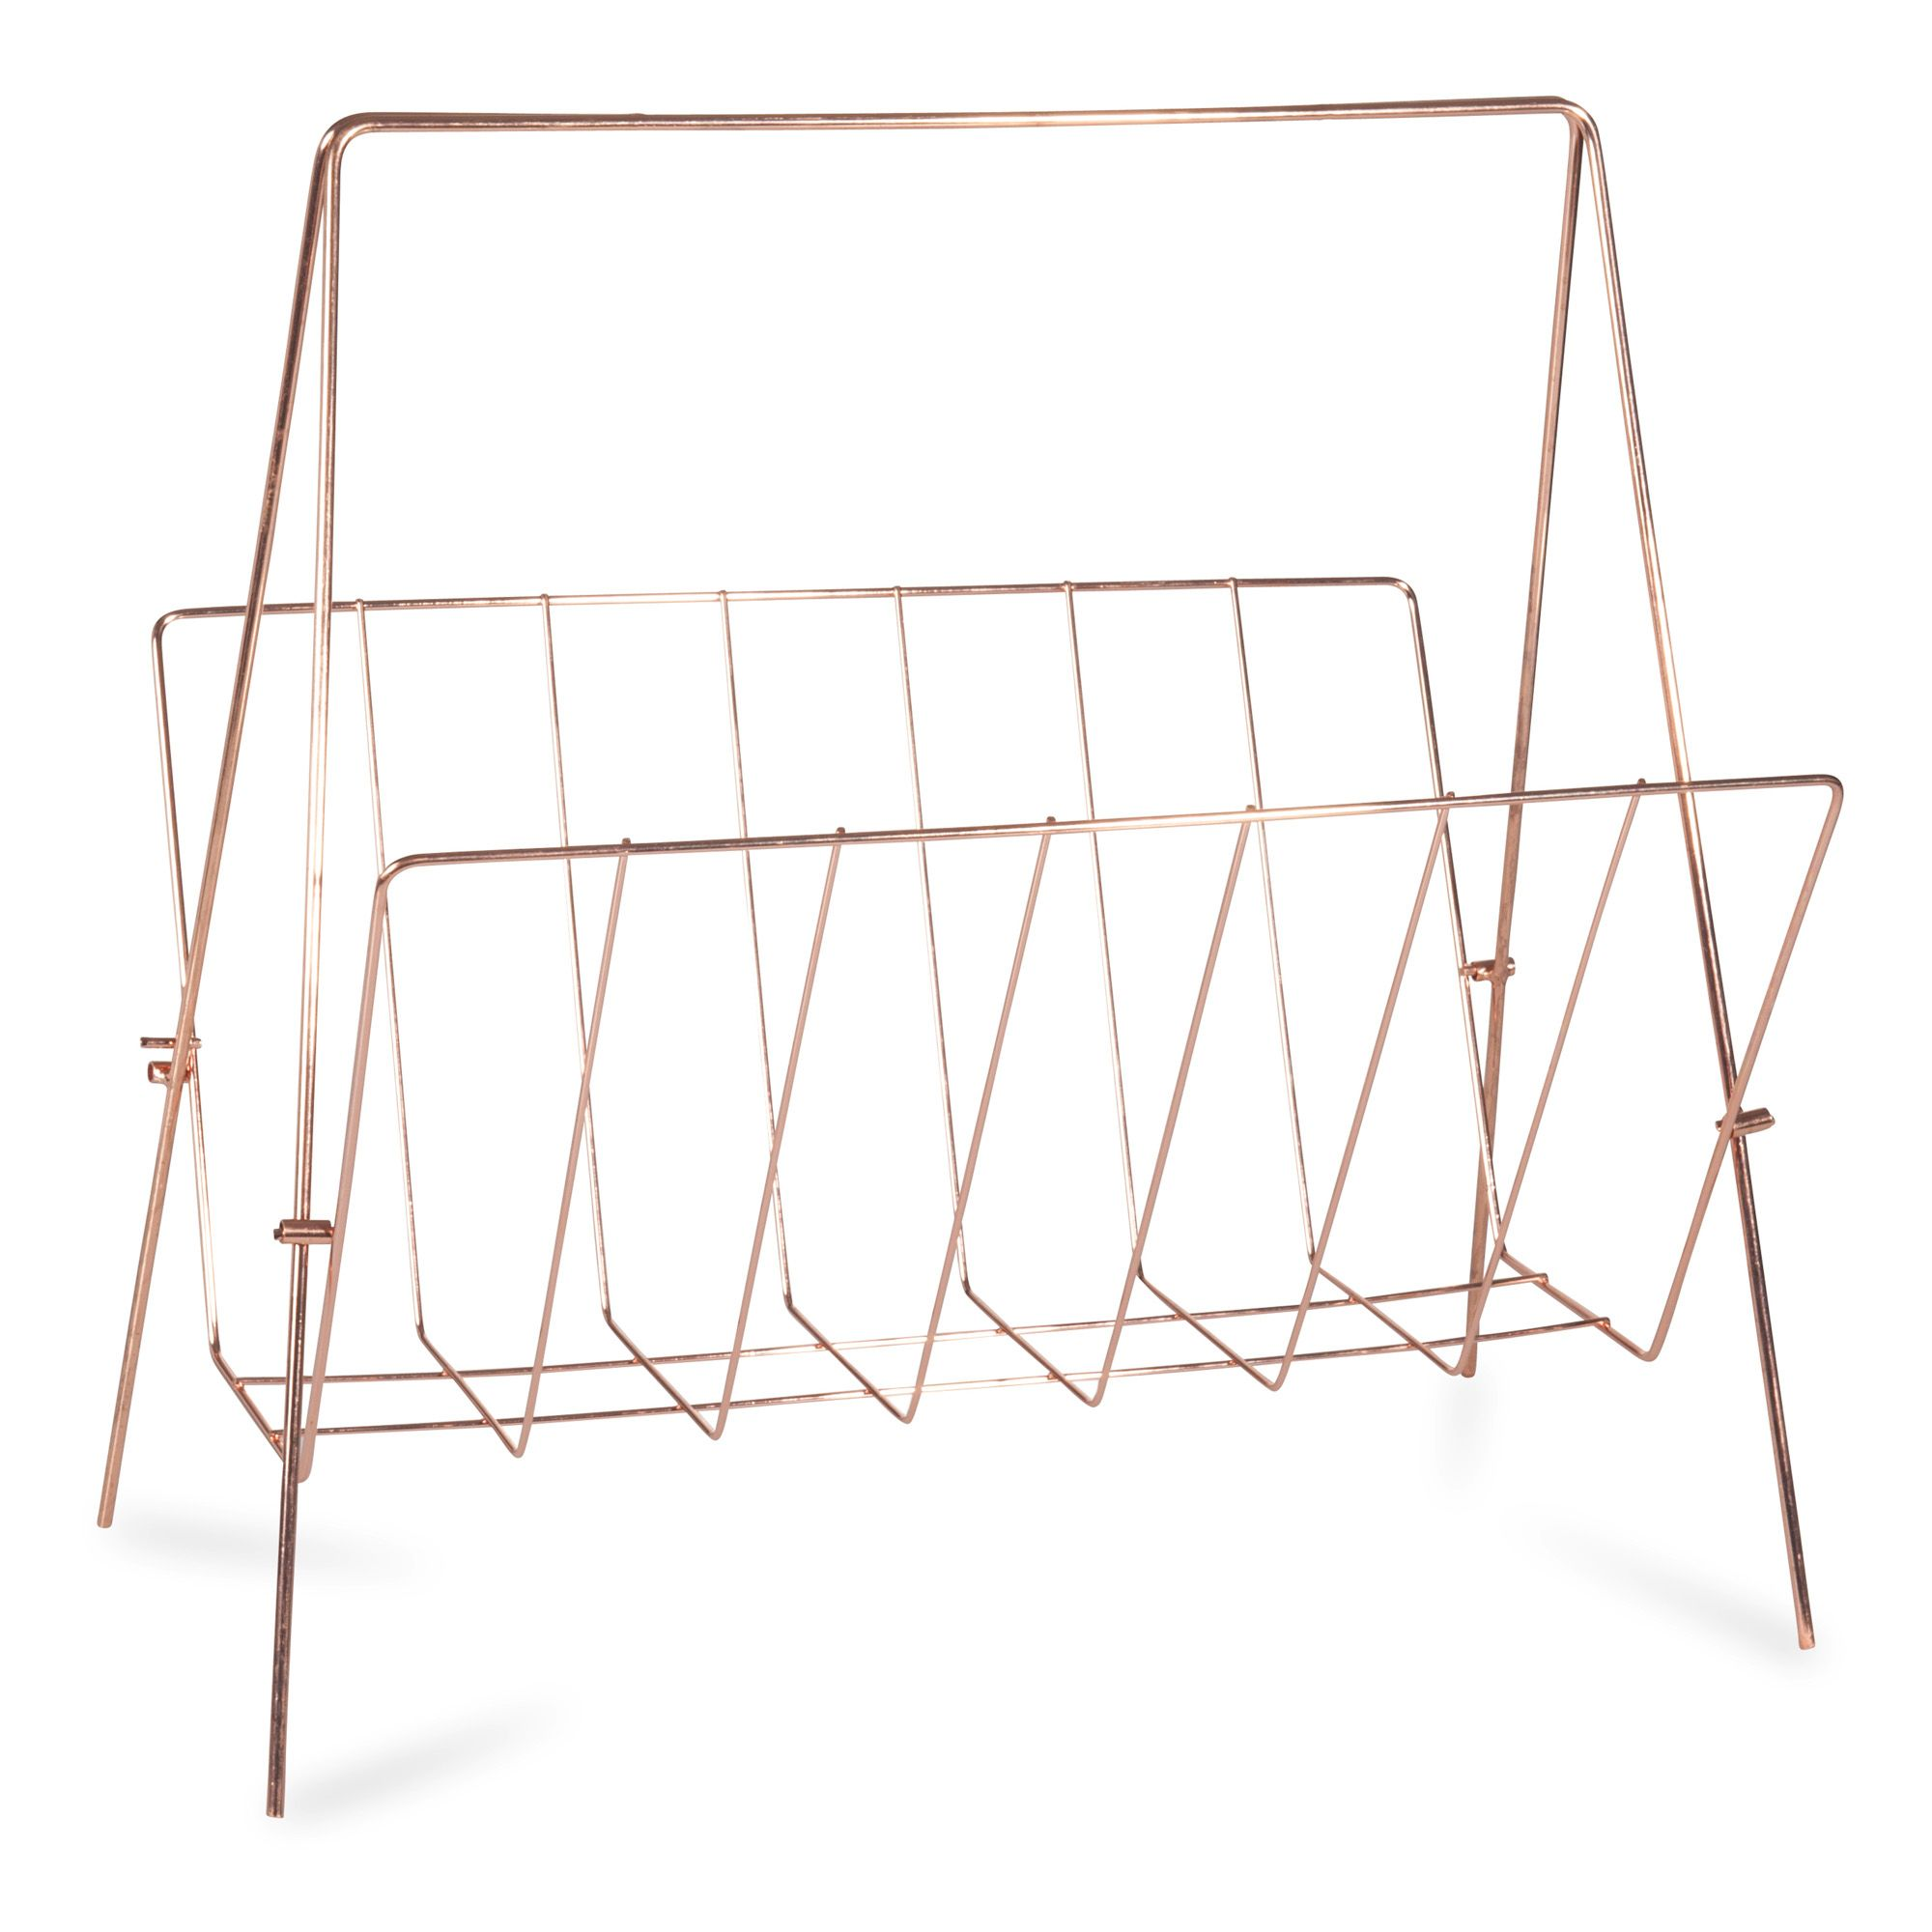 koperkleurig metalen swaggy copper tijdschriftenrek. Black Bedroom Furniture Sets. Home Design Ideas